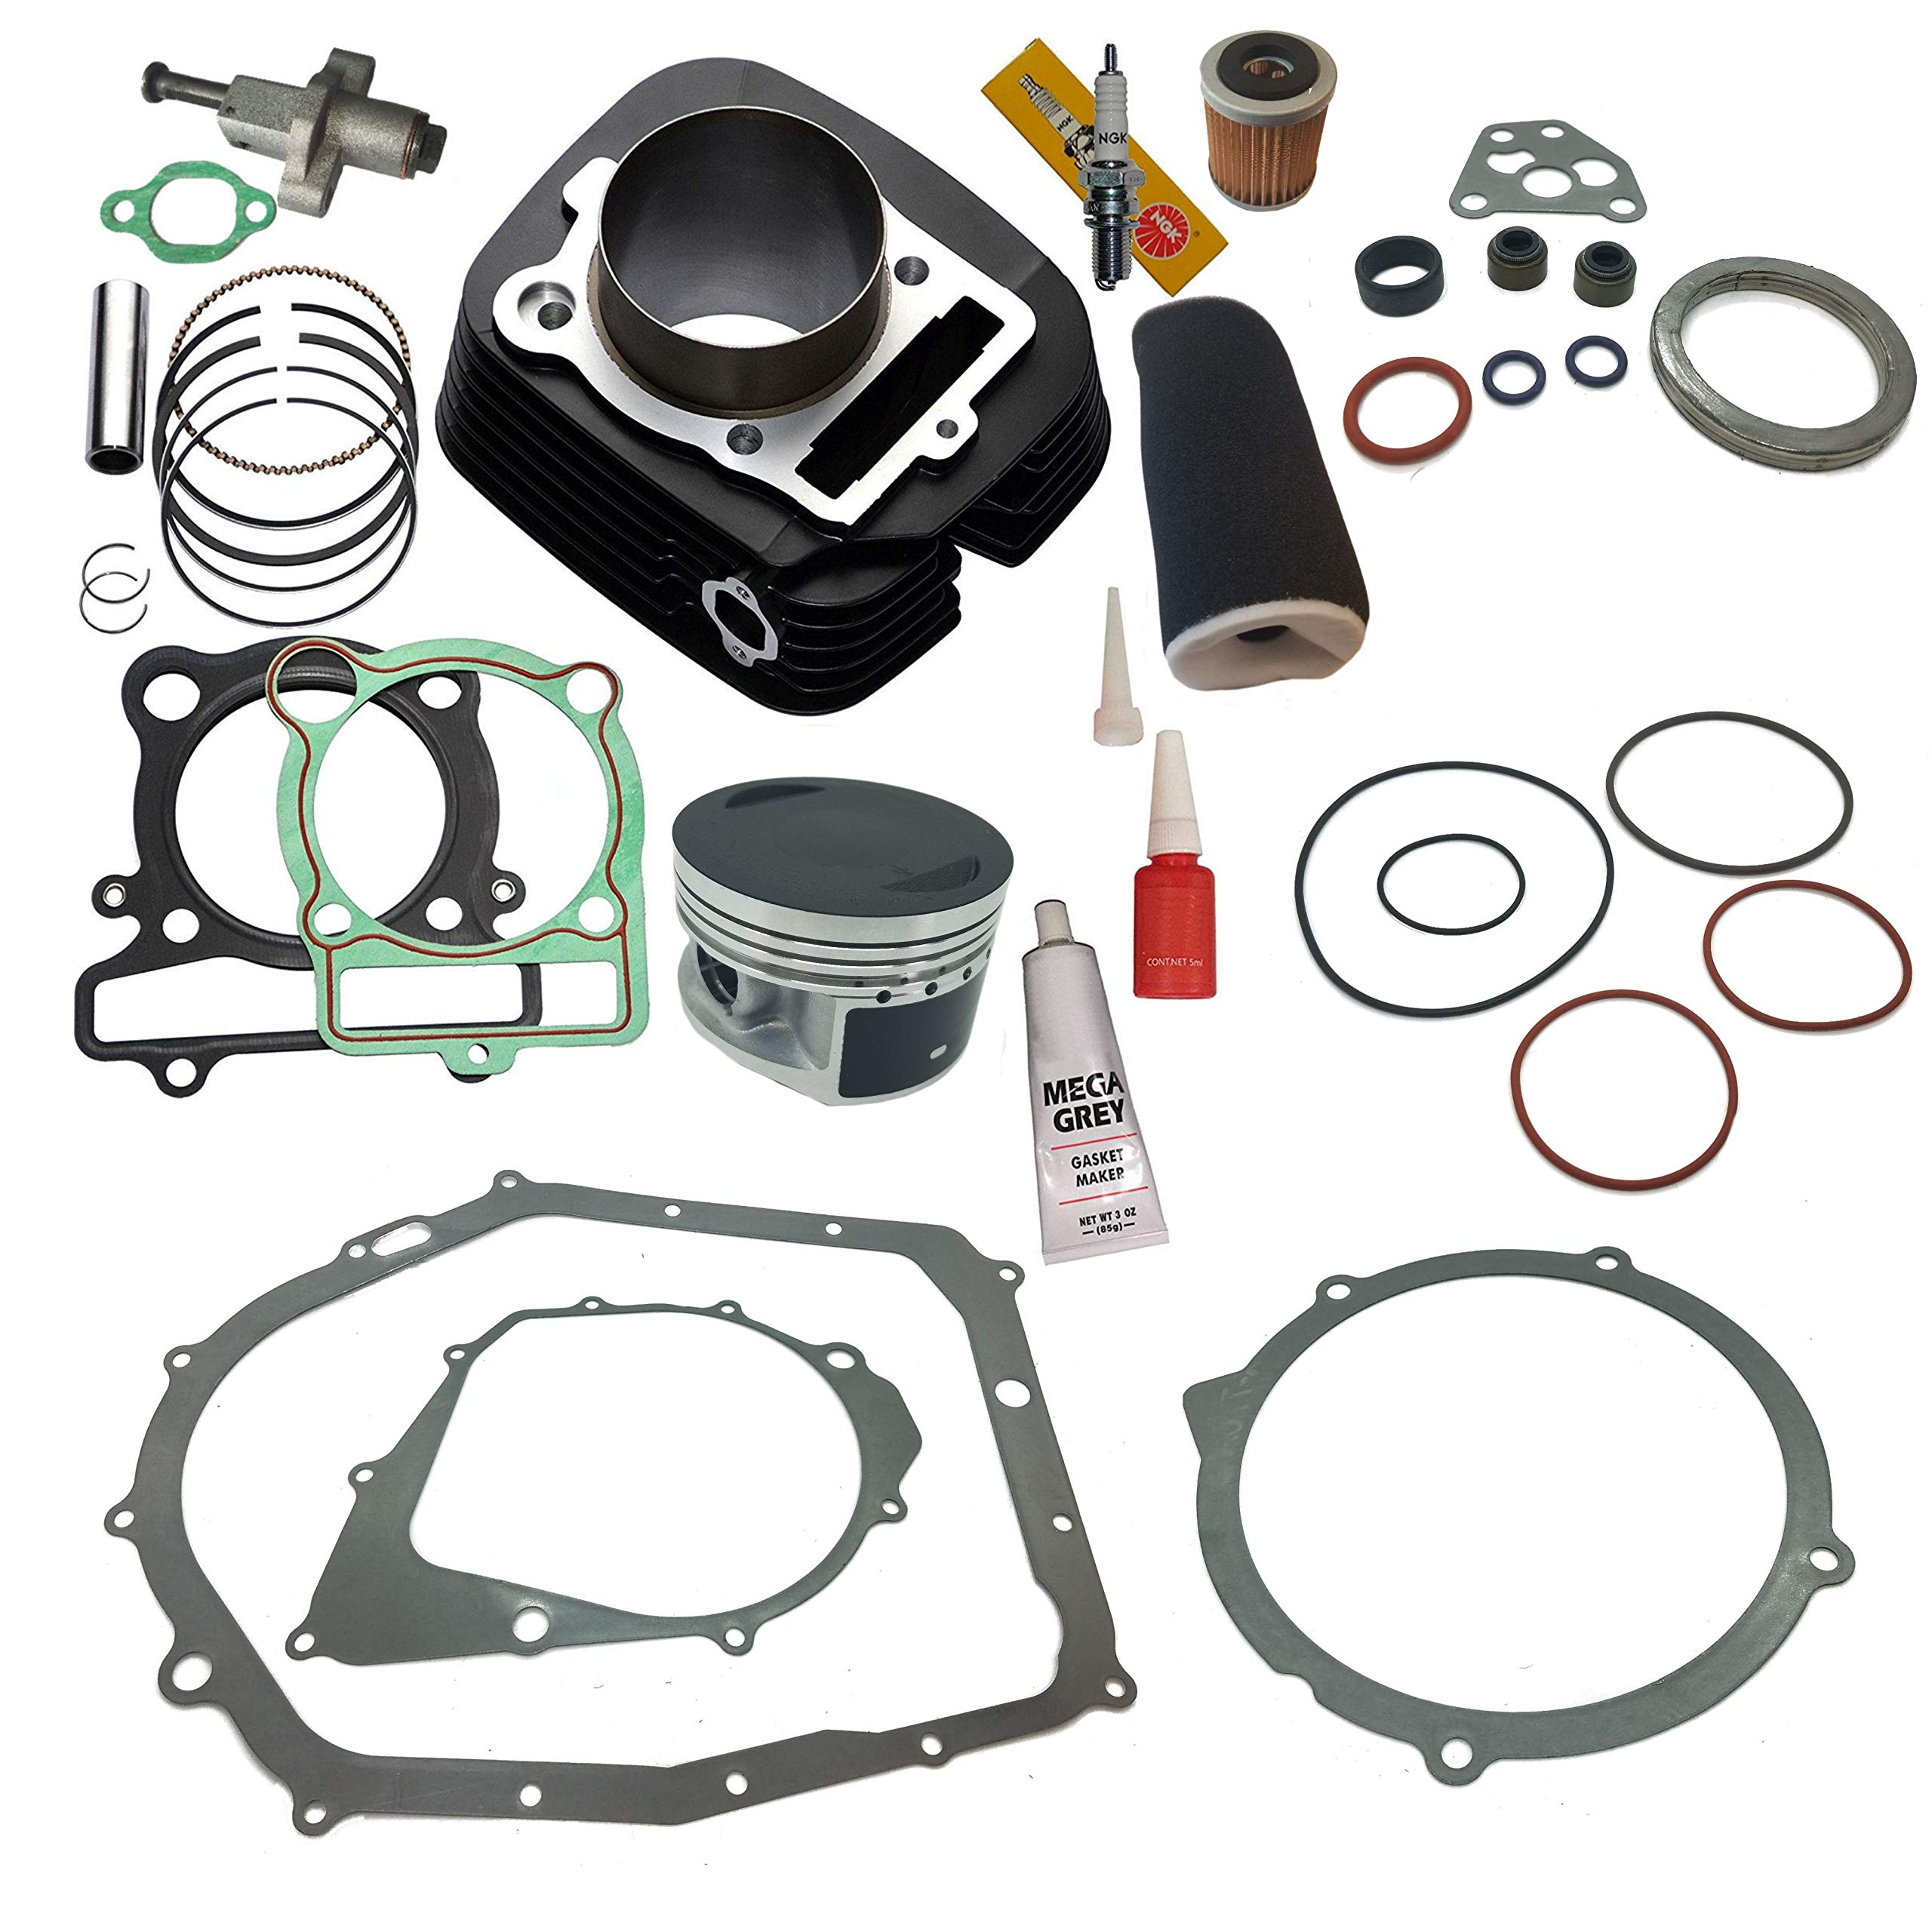 NEW! YAMAHA WARRIOR 350 CYLINDER PISTON GASKET OIL FILTER AIR FILTER TOP END KIT SET 1987 1988 1989 1990 1991 1992 1993 1994 1995 1996 1997 1998 1999 2000 2001 2002 2003 2004 by TOP NOTCH PARTS